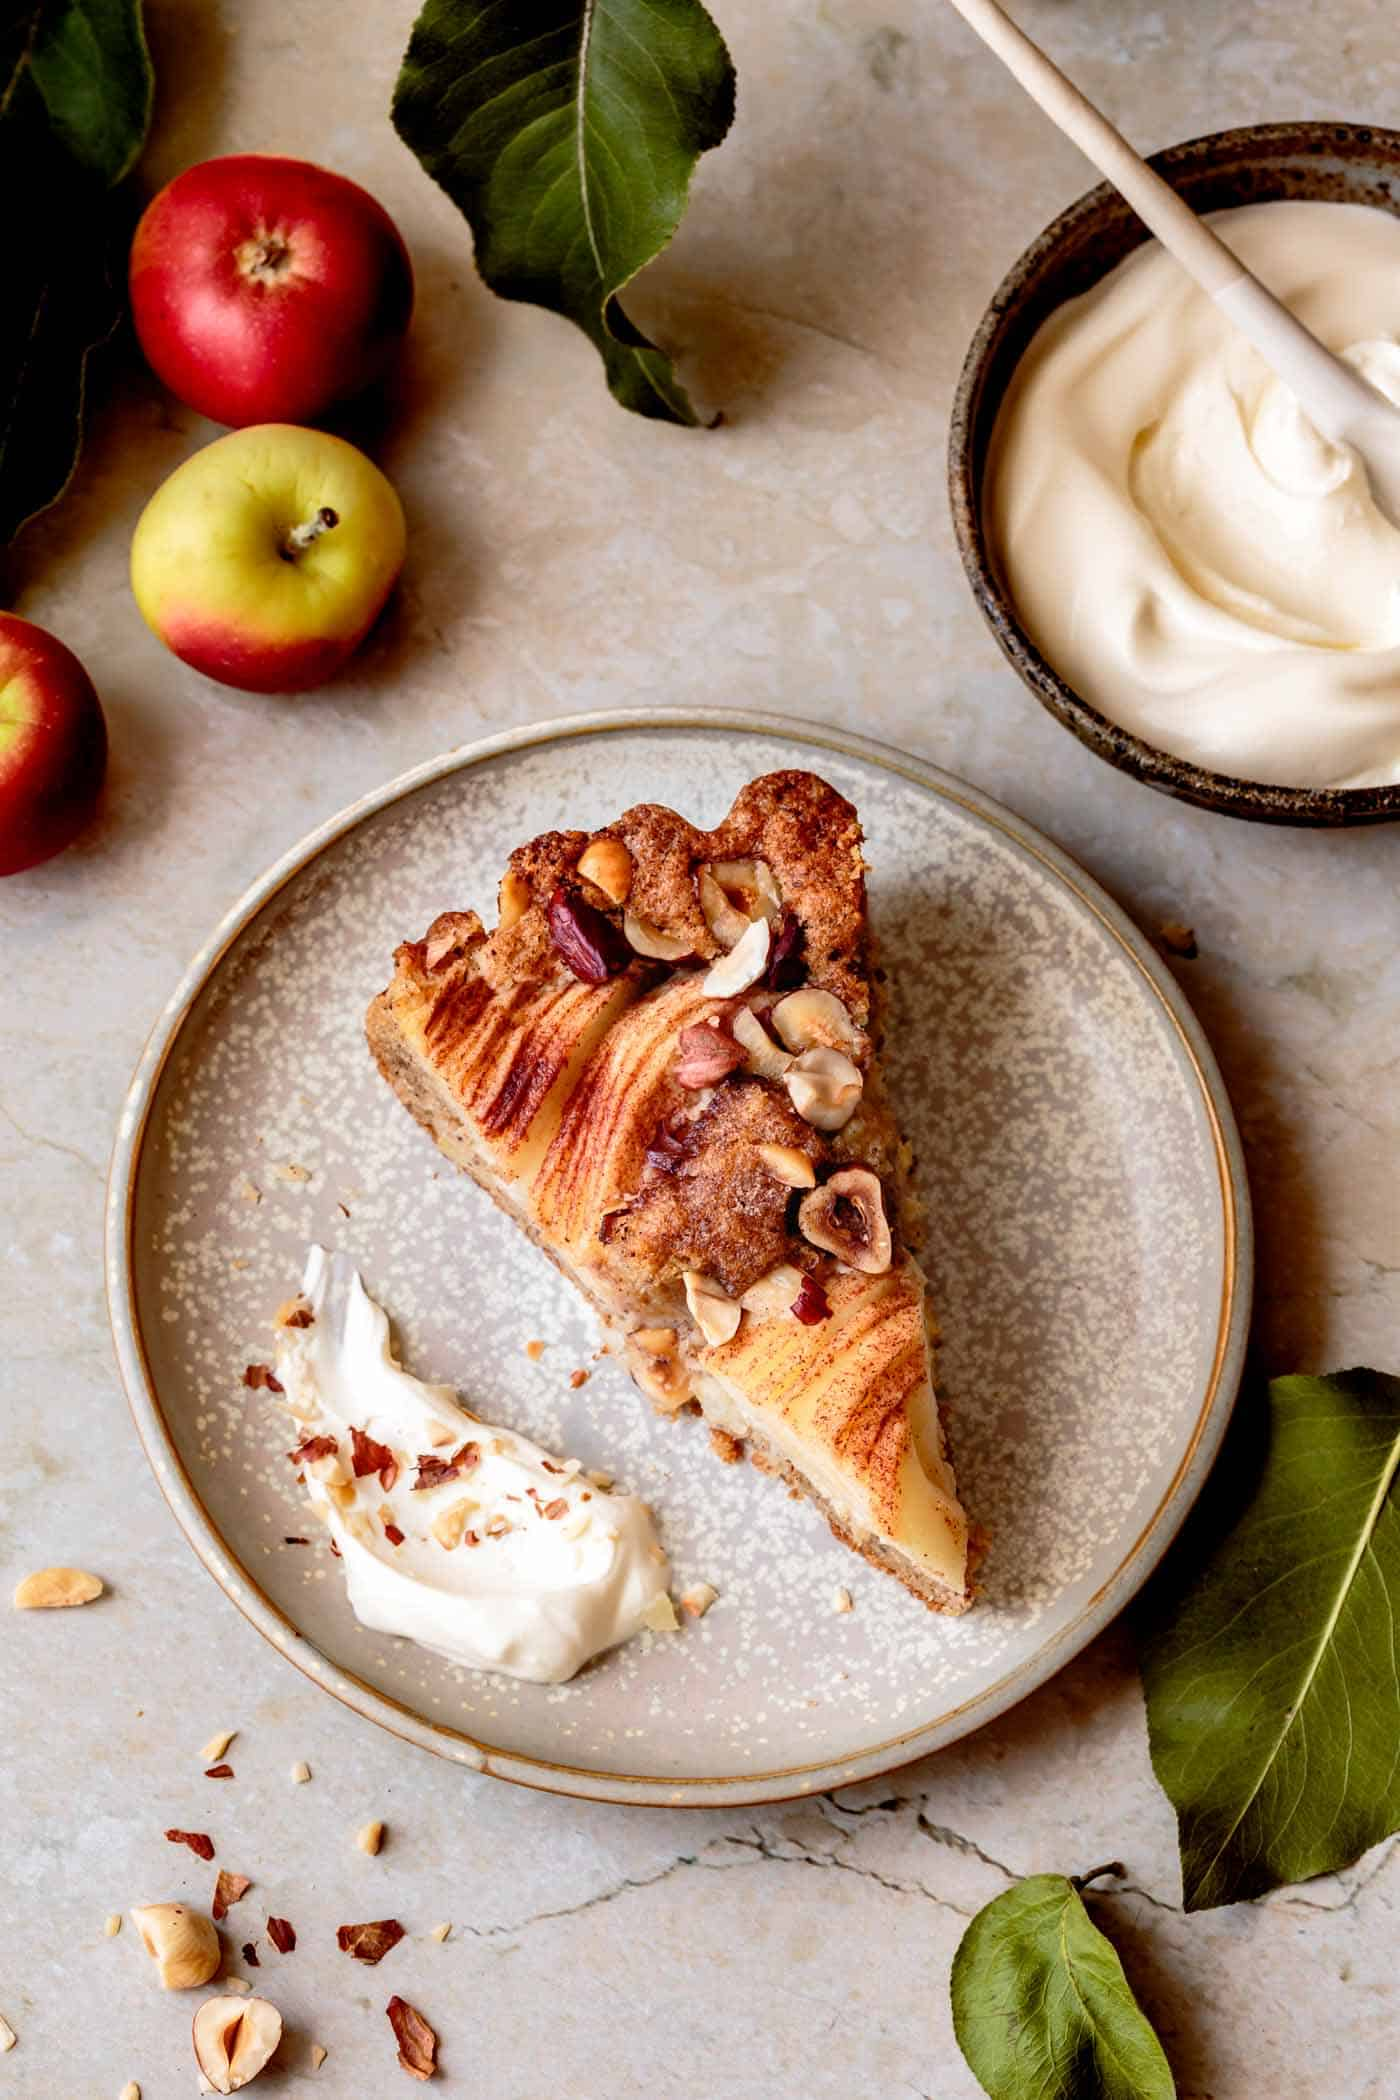 Slice of gluten-free apple cake with almond flour or hazelnut flour